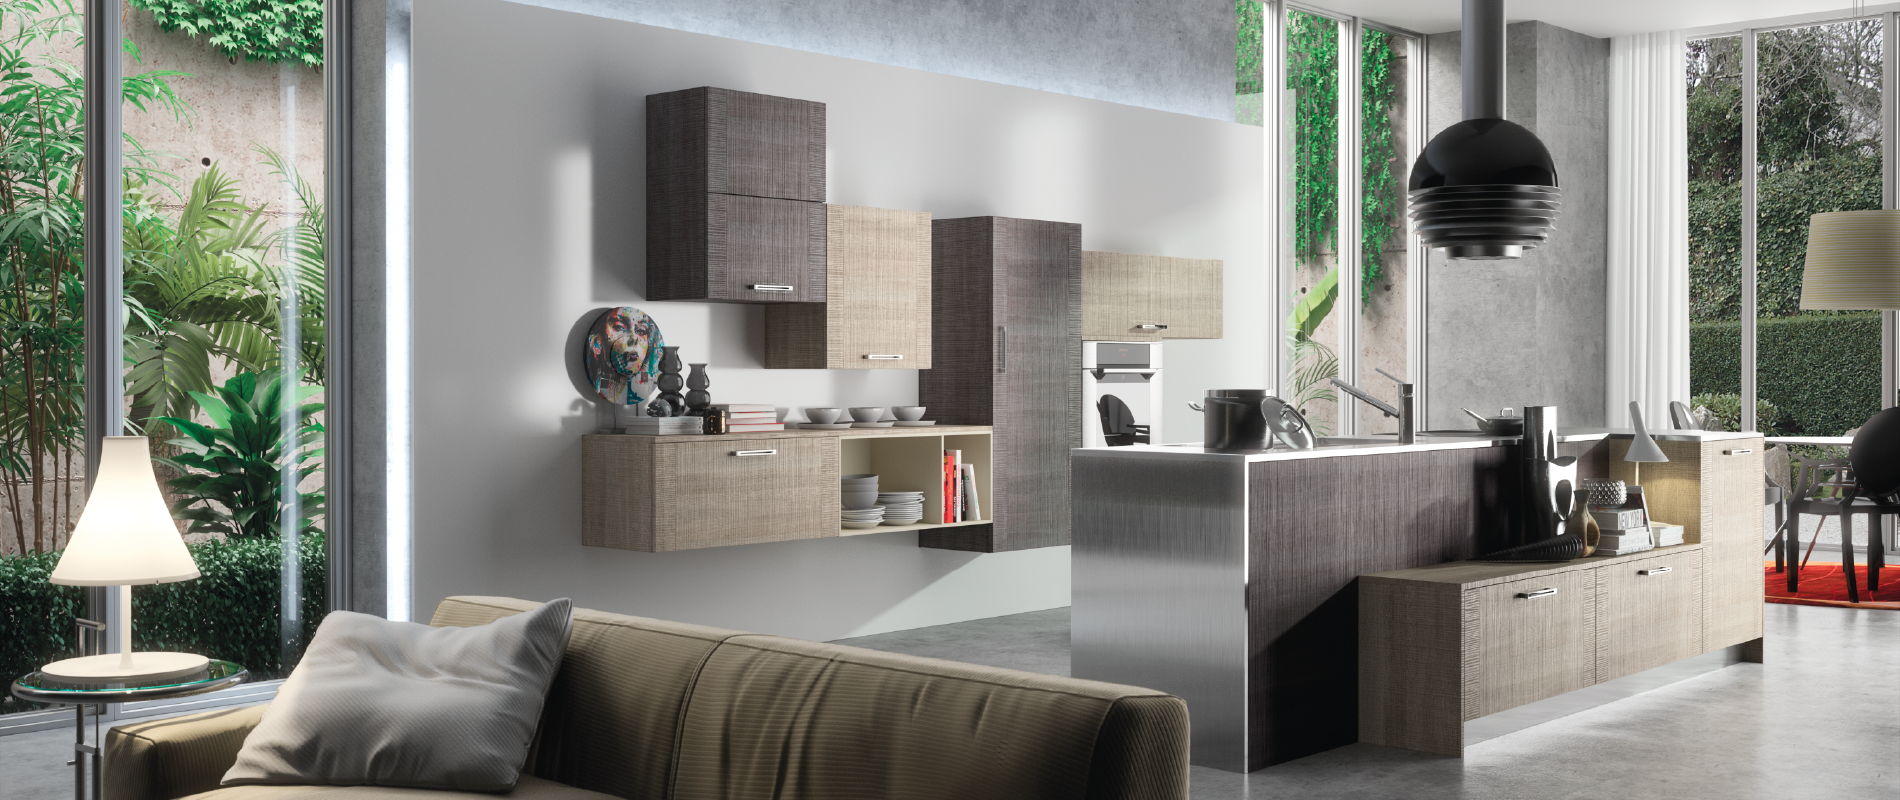 belle cuisine contemporaine emma sur mesure design. Black Bedroom Furniture Sets. Home Design Ideas